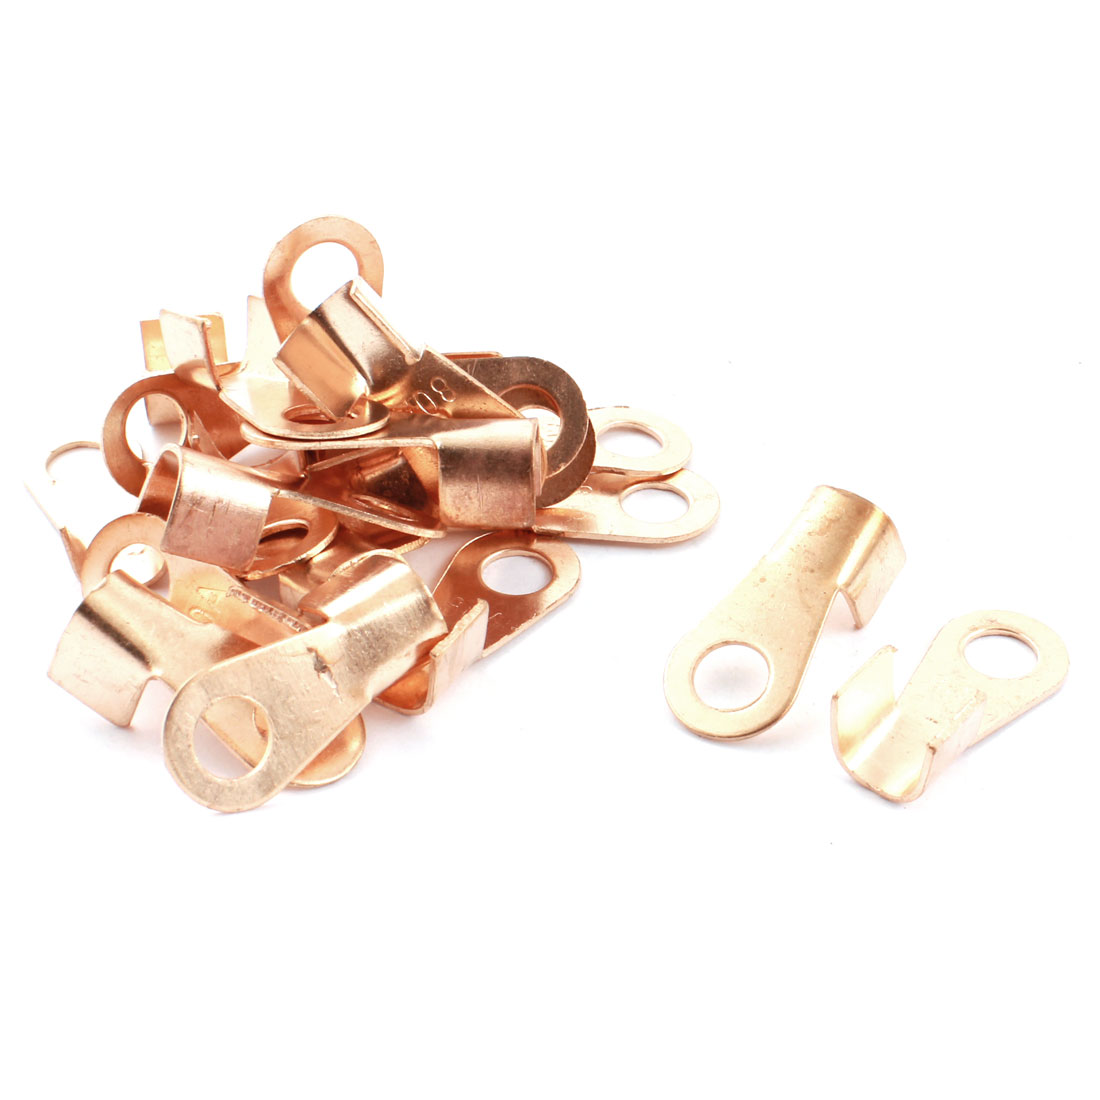 20 Pcs 80A Open Cable Connector Ring Lug Copper Passing Through Terminals